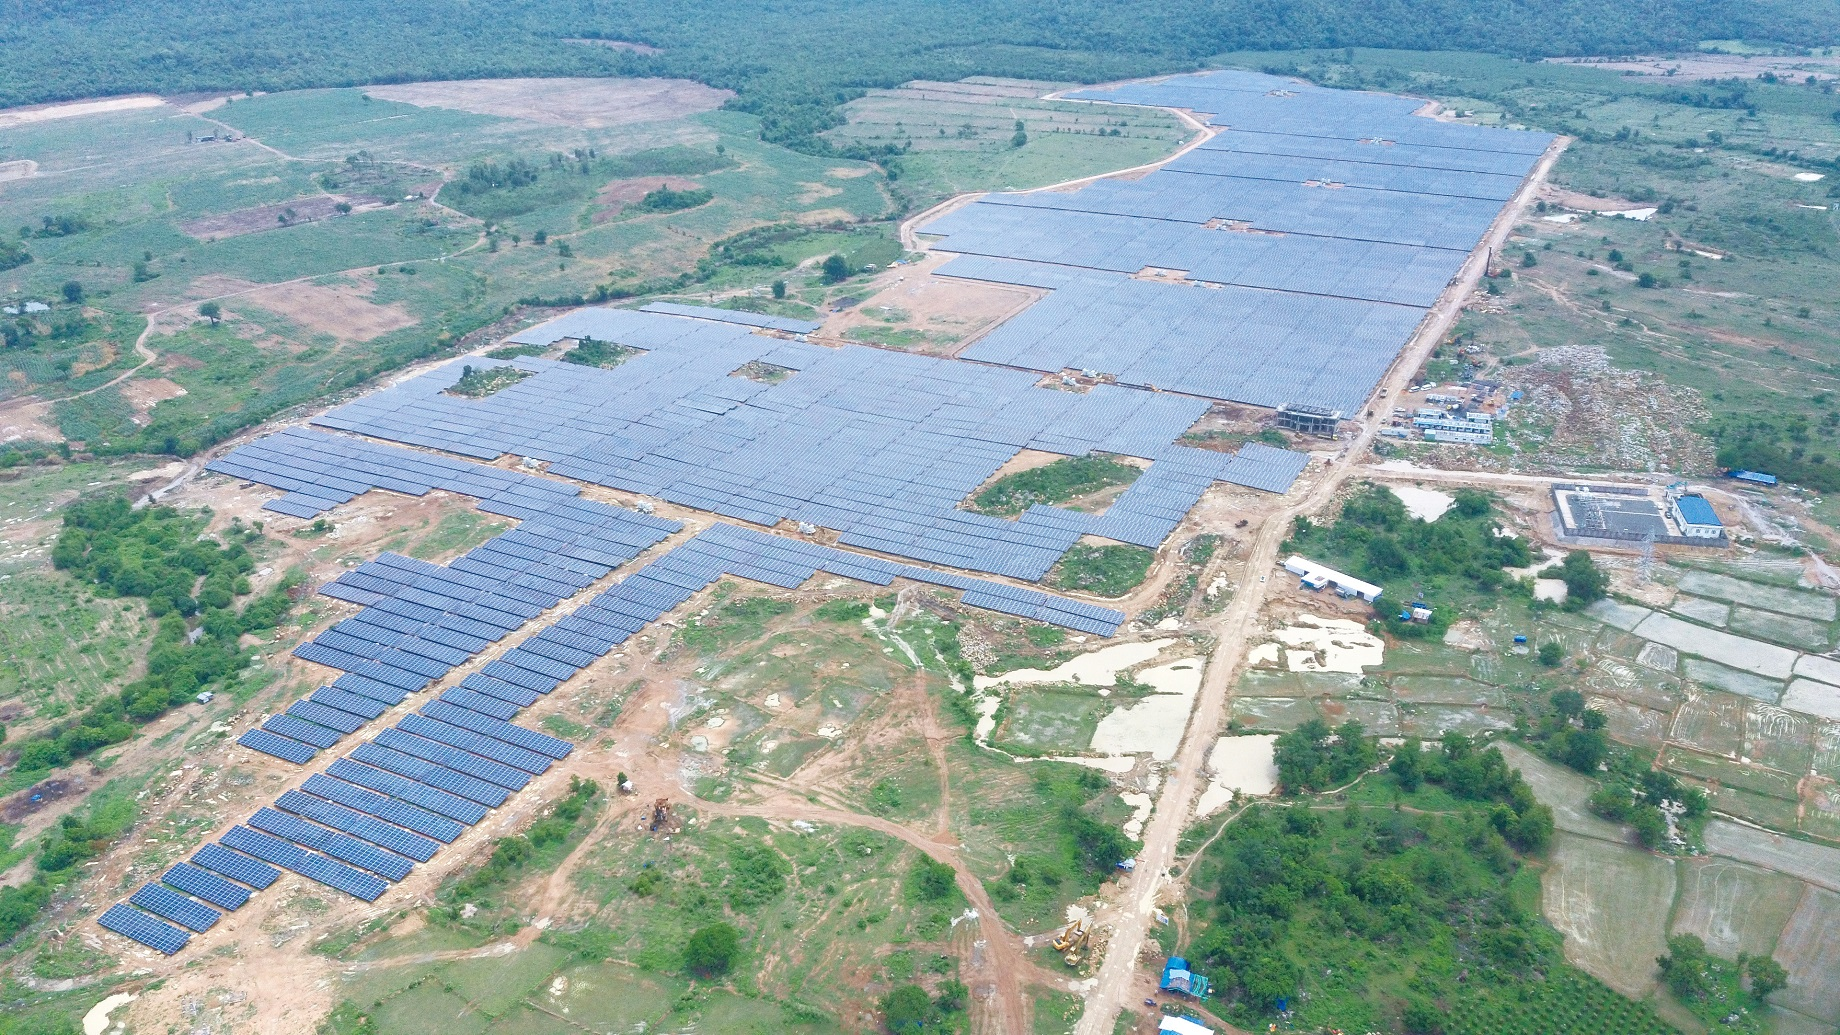 The 50MW Thuan Minh 2 Solar Farm. Source: Jetion.